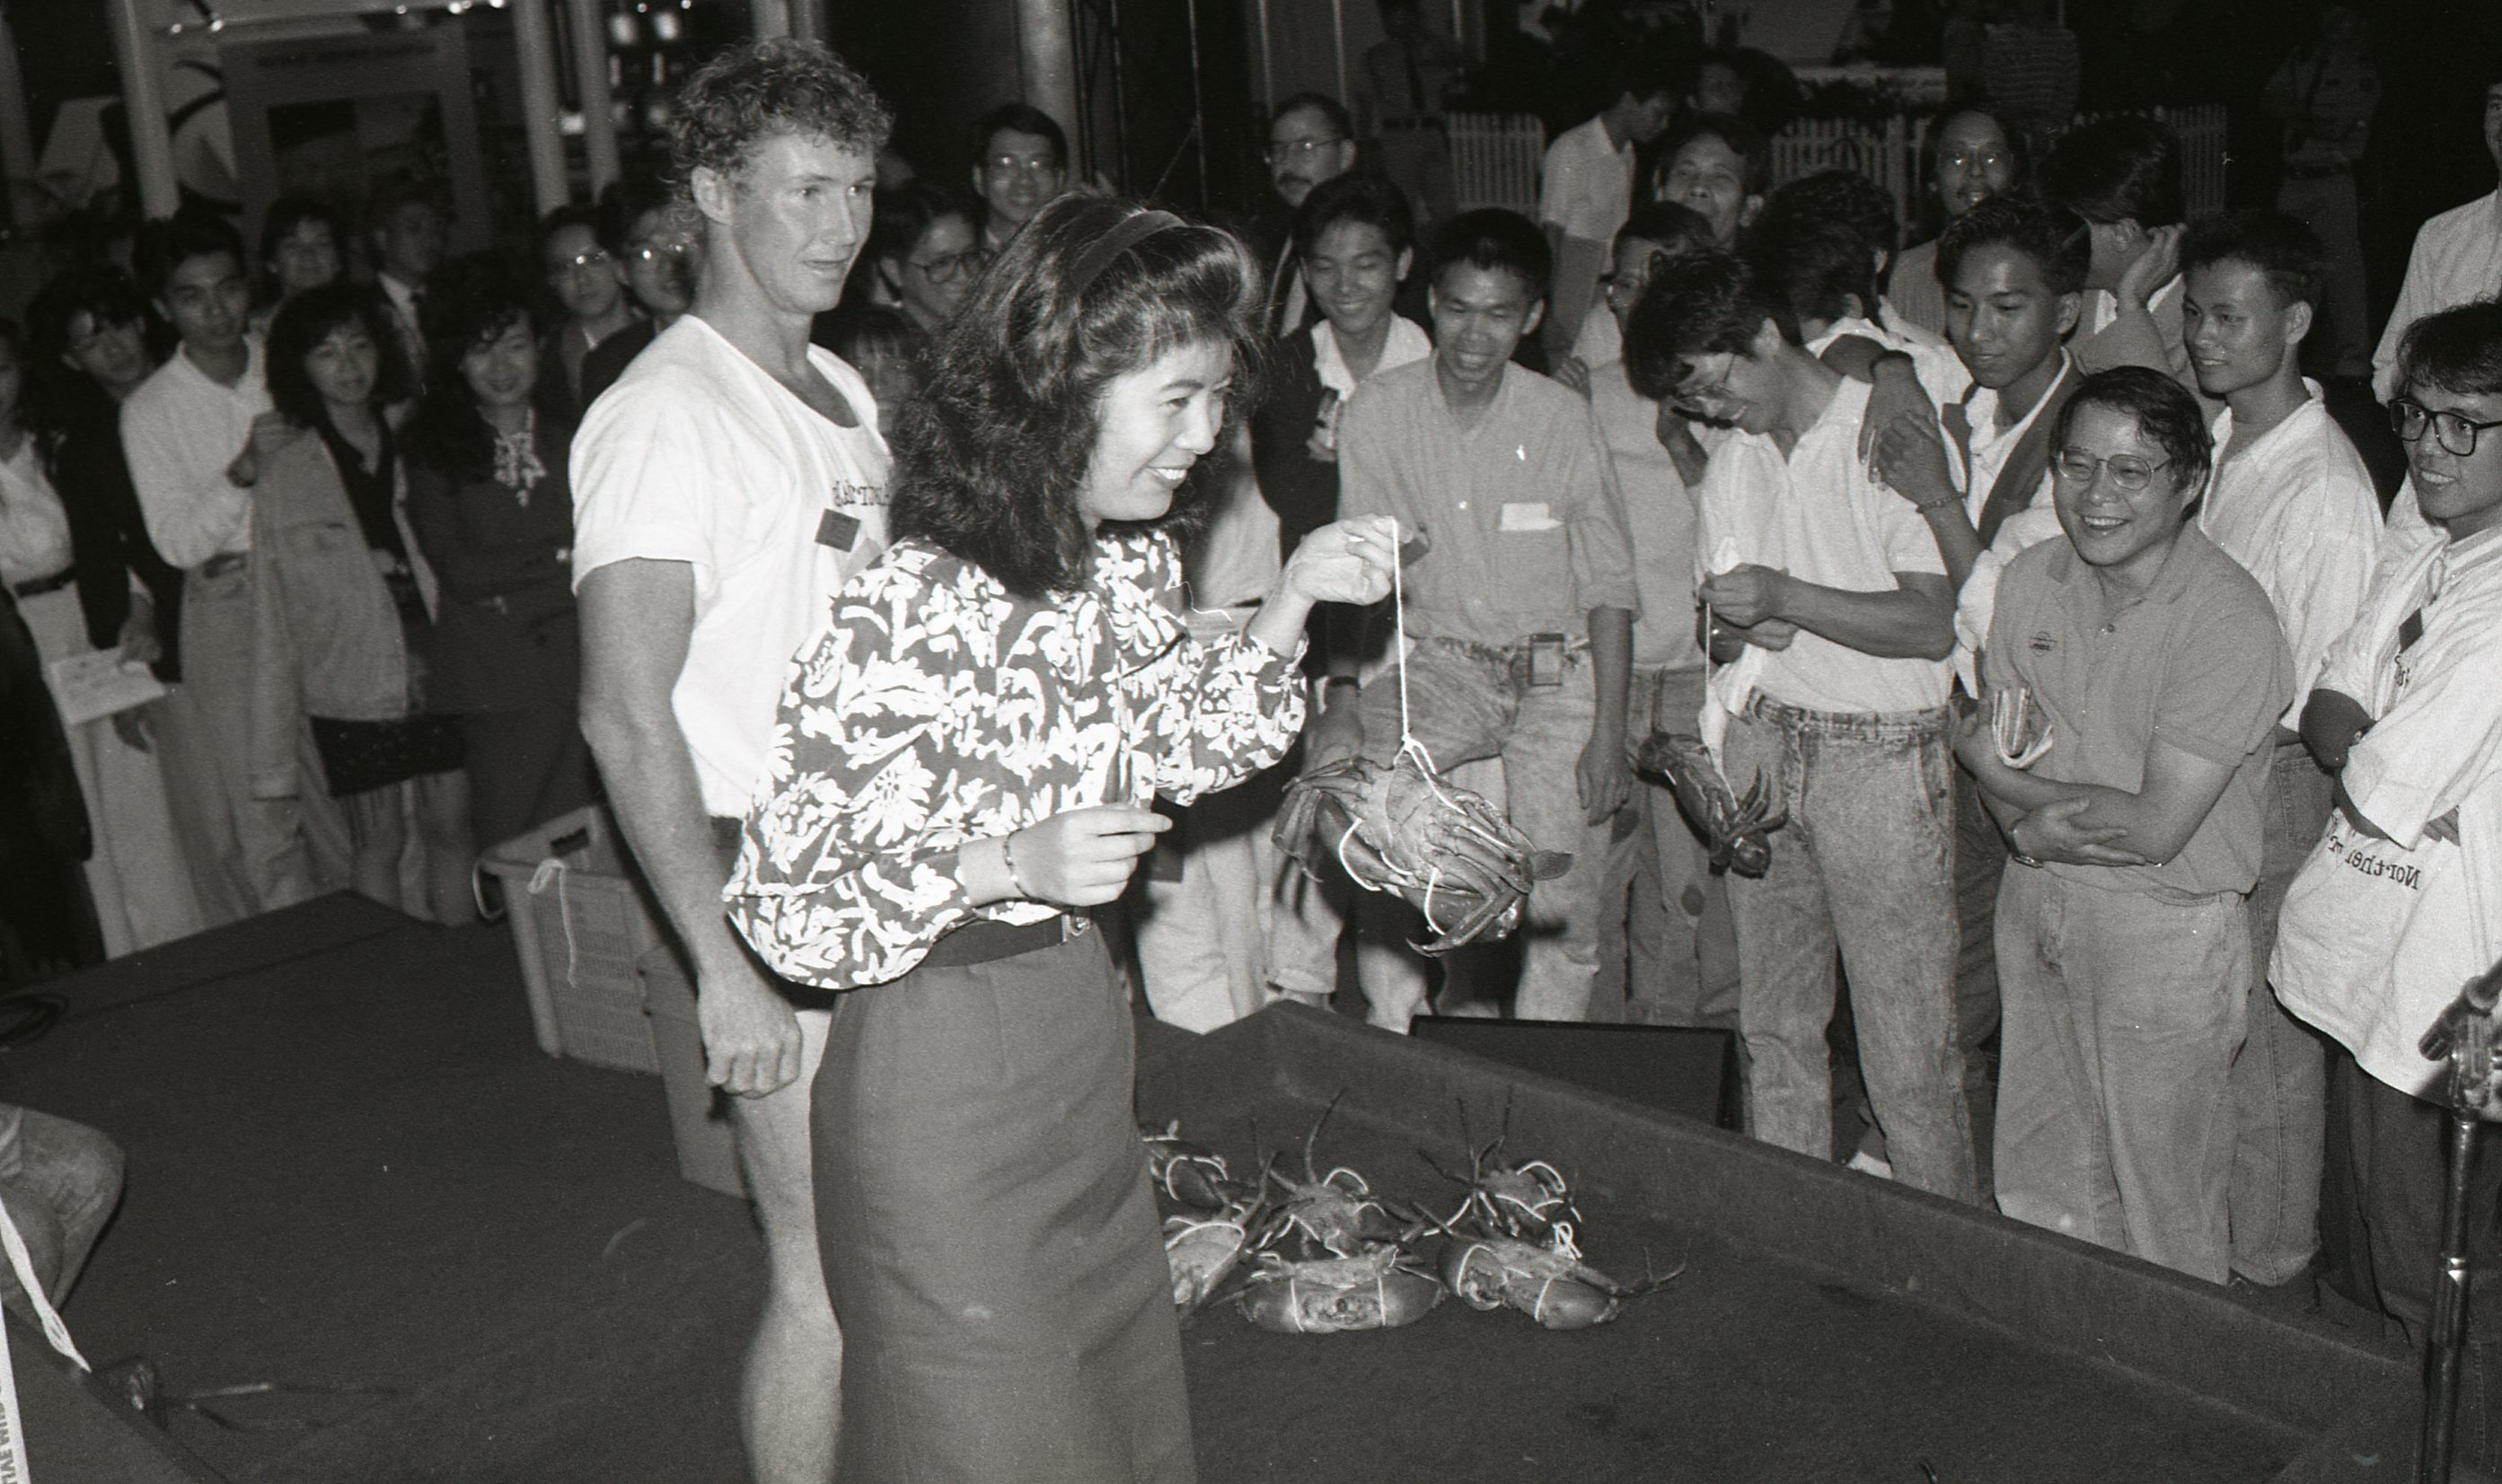 Hong Kong World Expo, Northern Territory delegation Mud Crab Tying demonstration, October 1989<br />Image courtesy of Library & Archives NT,  Department of the Chief Minister, NTRS 3823 P1, Box 11, BW2876, Image 30